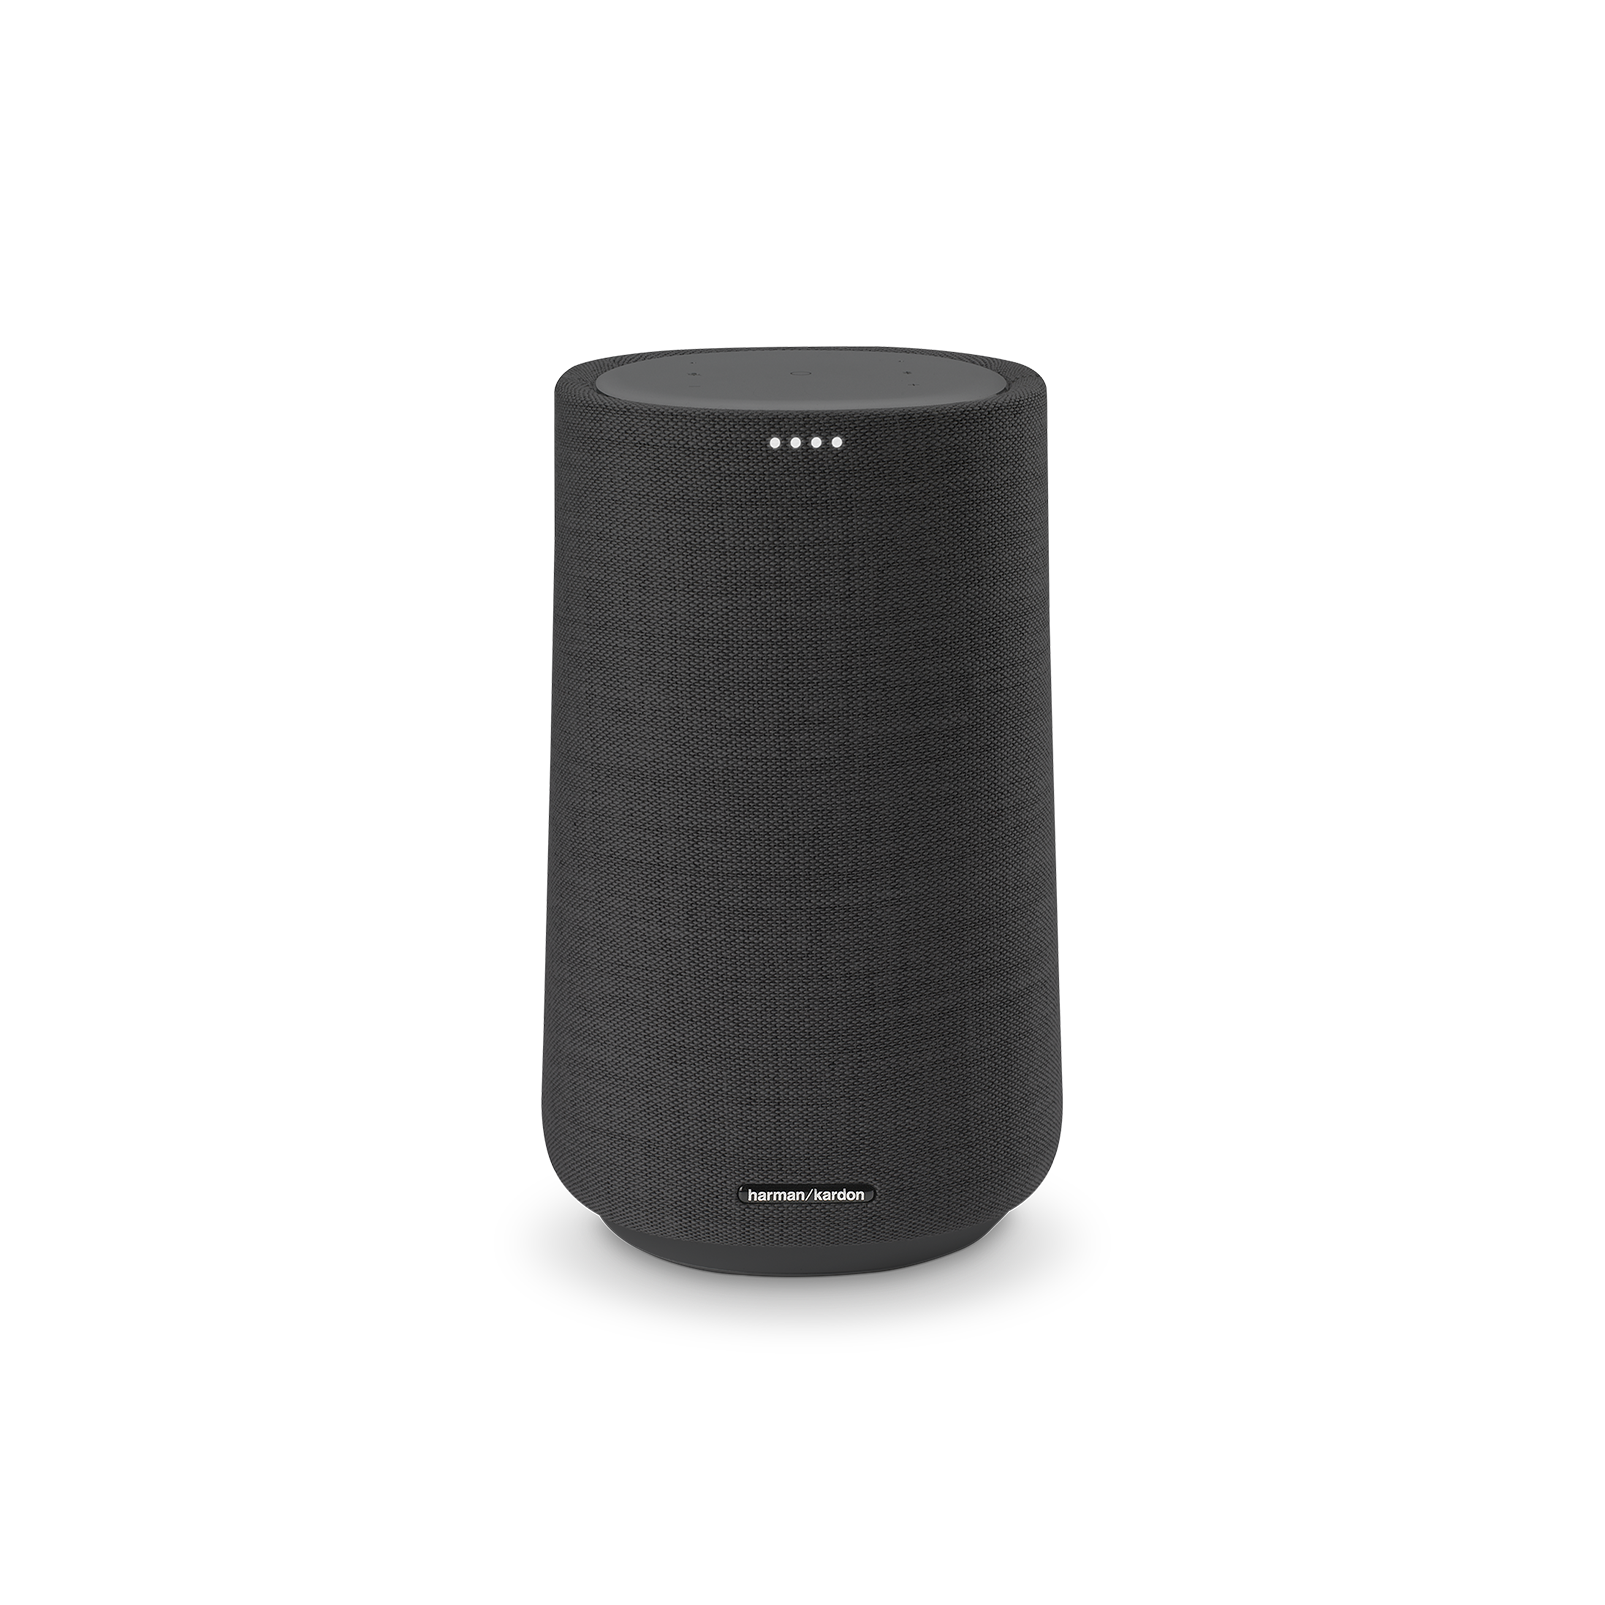 Harman Kardon Citation 100 MKII - Black - Bring rich wireless sound to any space with the smart and compact Harman Kardon Citation 100 mkII. Its innovative features include AirPlay, Chromecast built-in and the Google Assistant. - Front